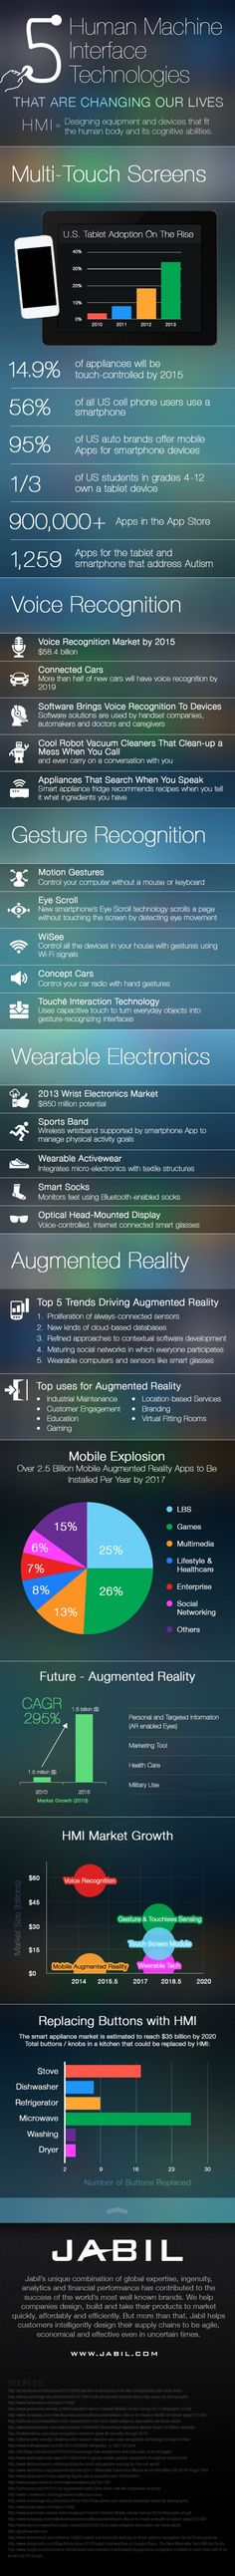 5 Human Machine Interface (HMI) Technologies that are Changing our Lives #Infographic